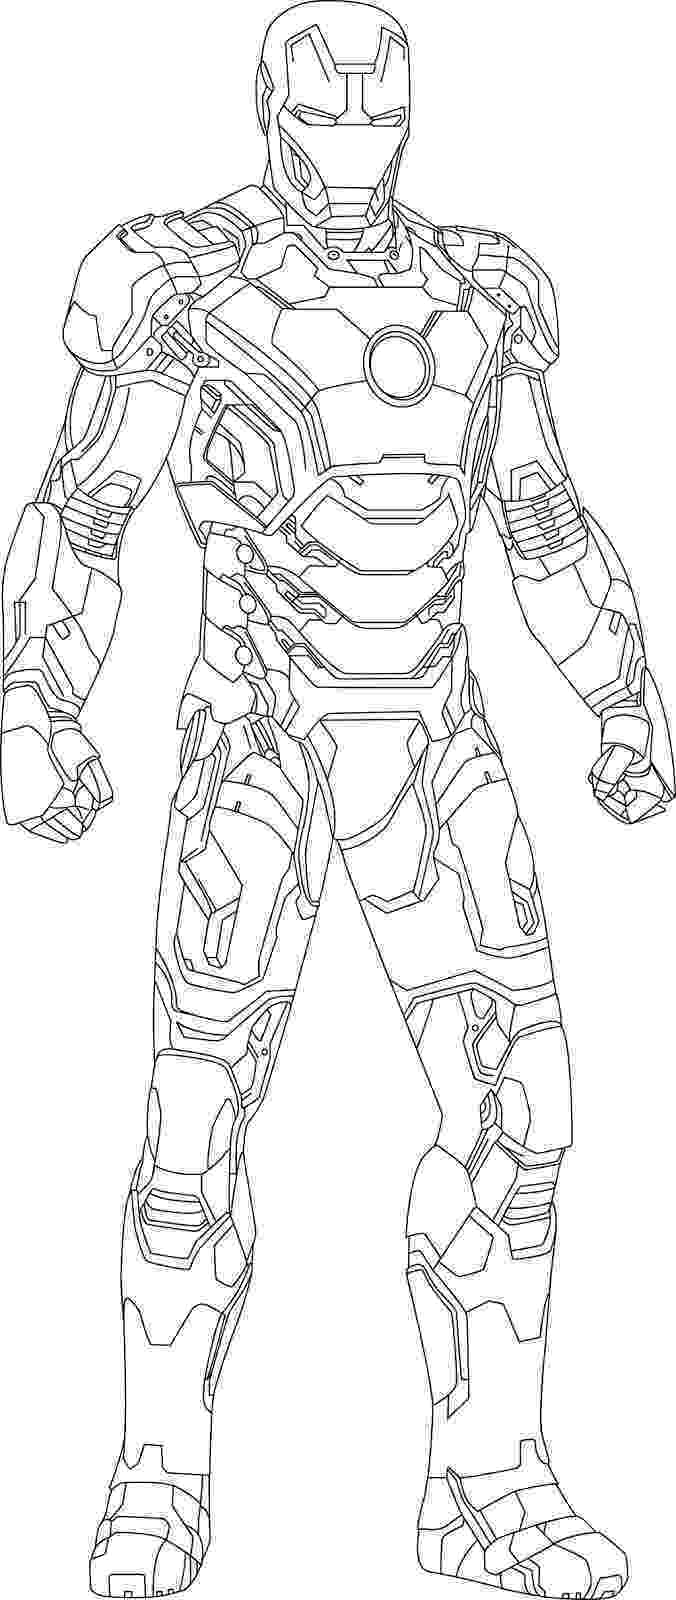 ironman colouring iron man 2 coloring pages collections ironman colouring